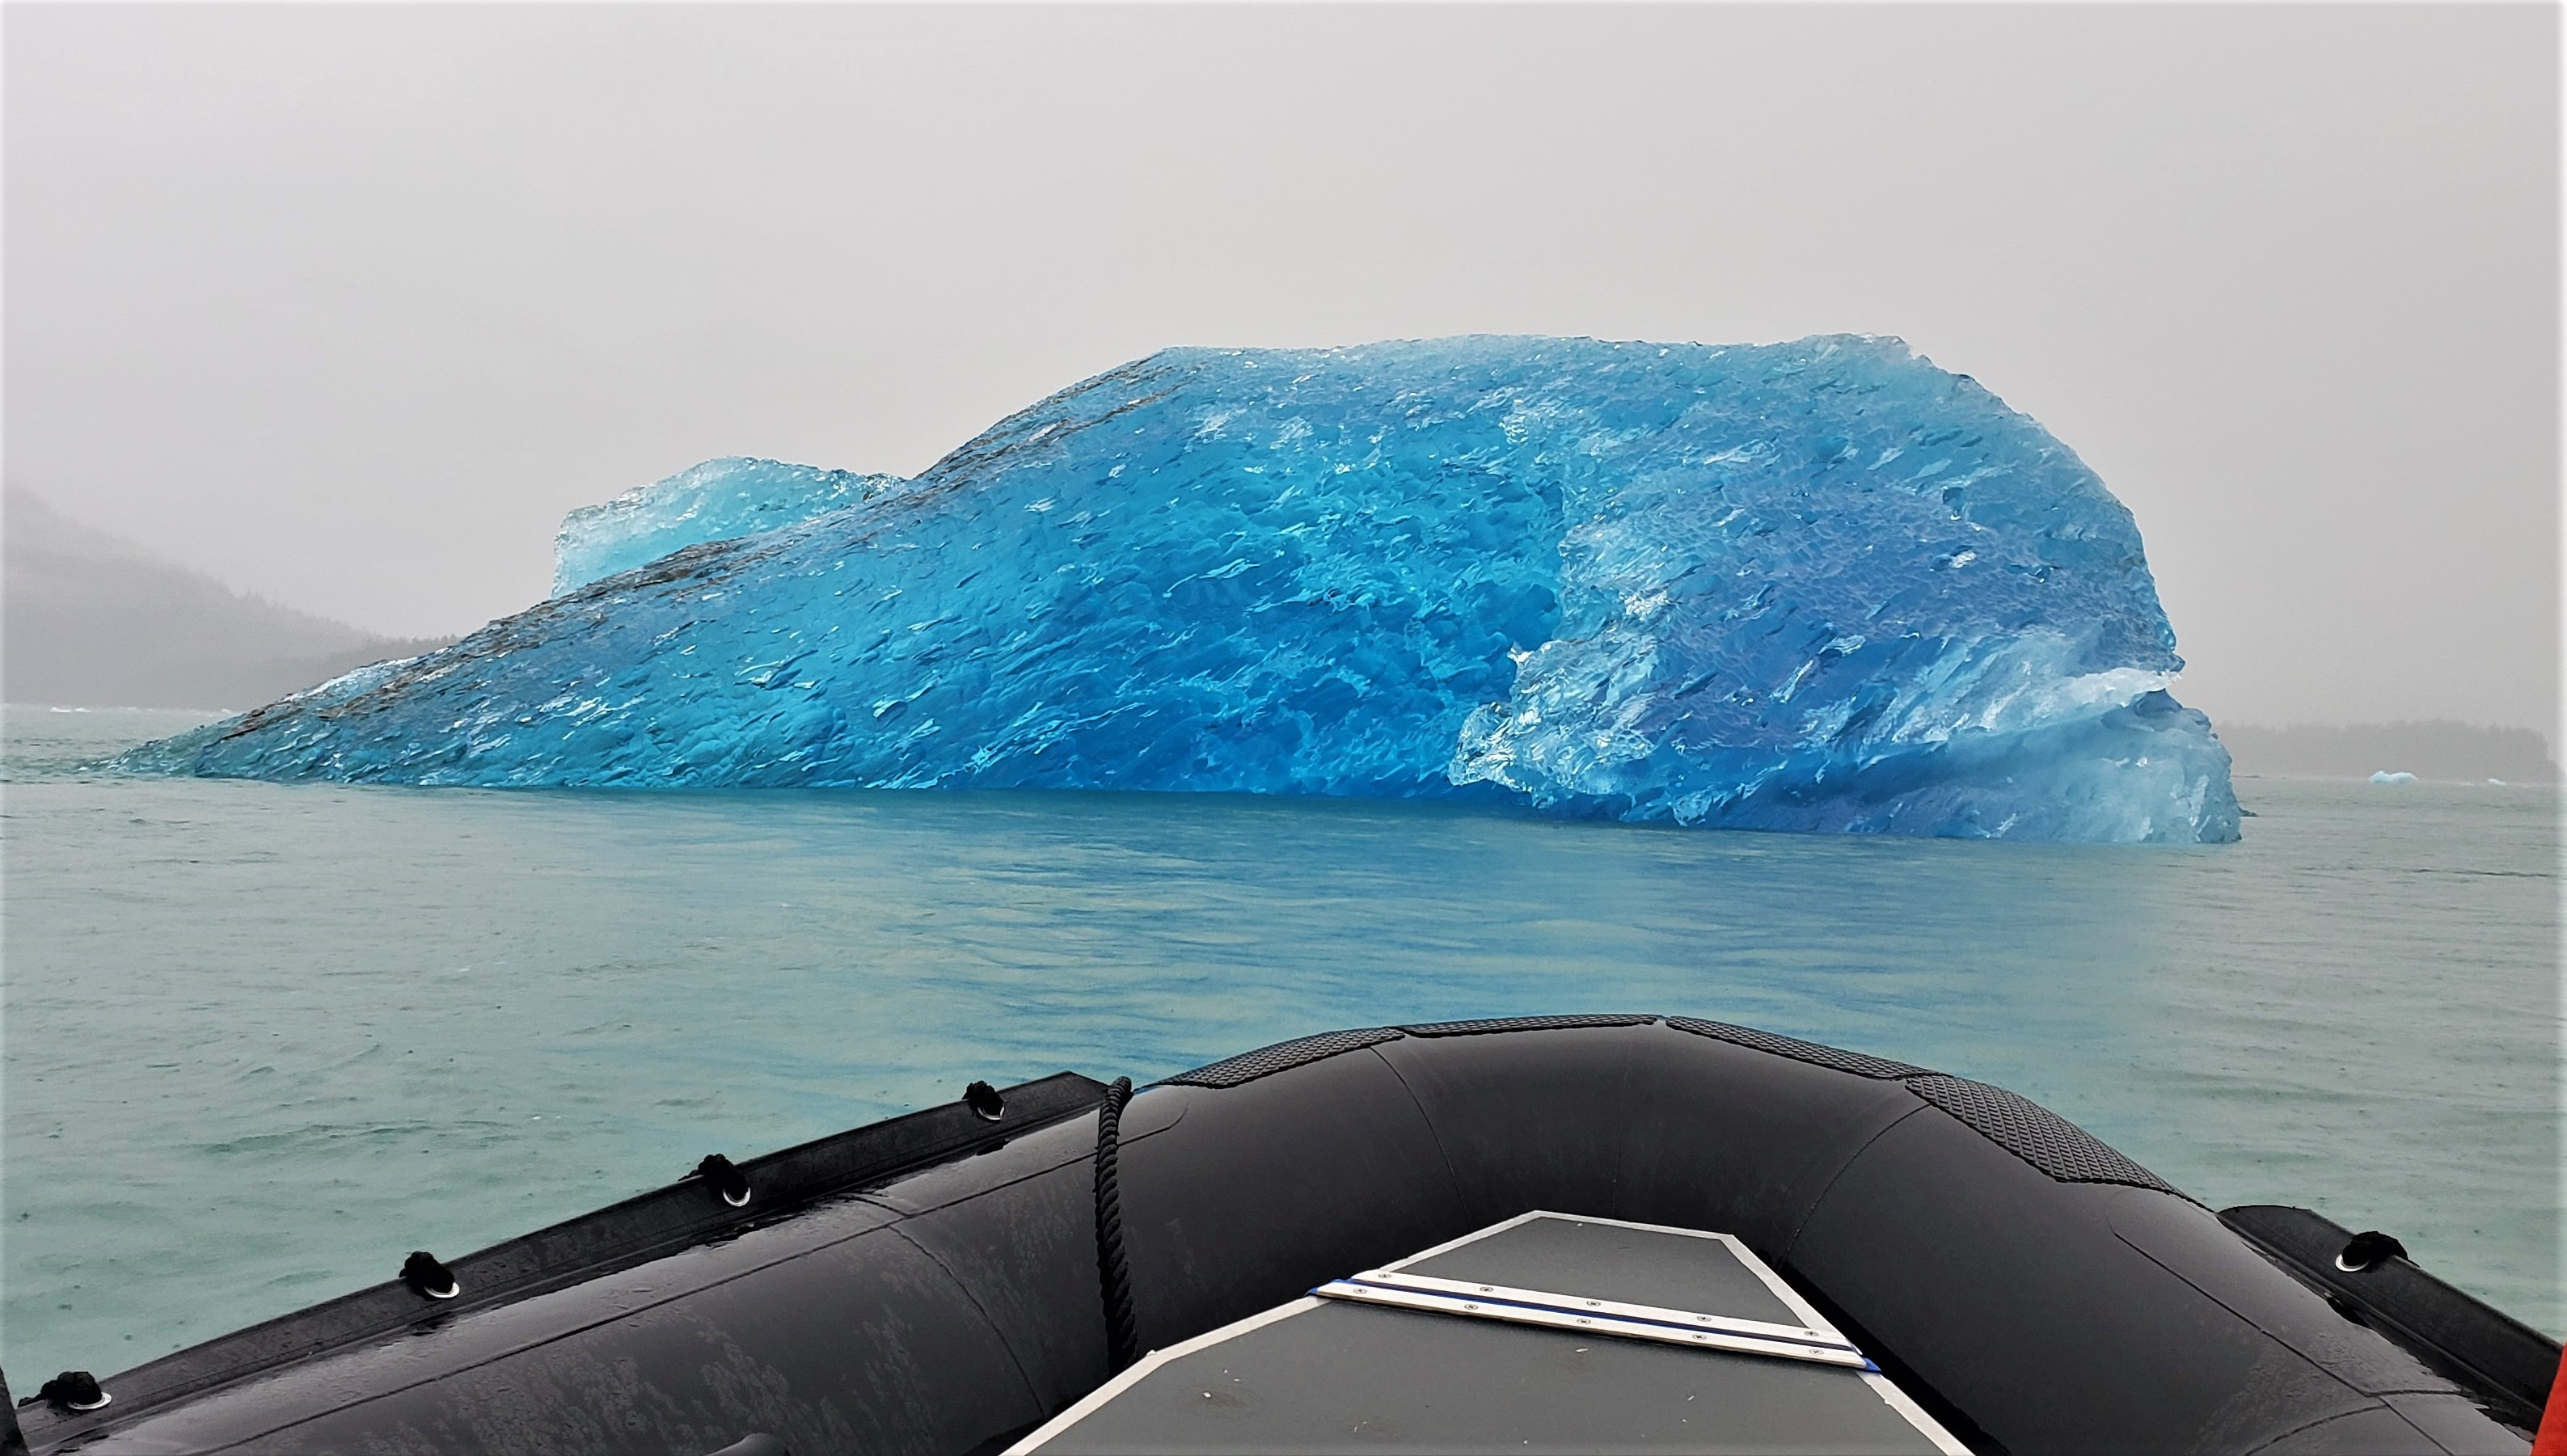 Blue glacial iceberg (shaped as a blue whale); it broke off from Le Conte Glacier. Photo by Susan J. Young